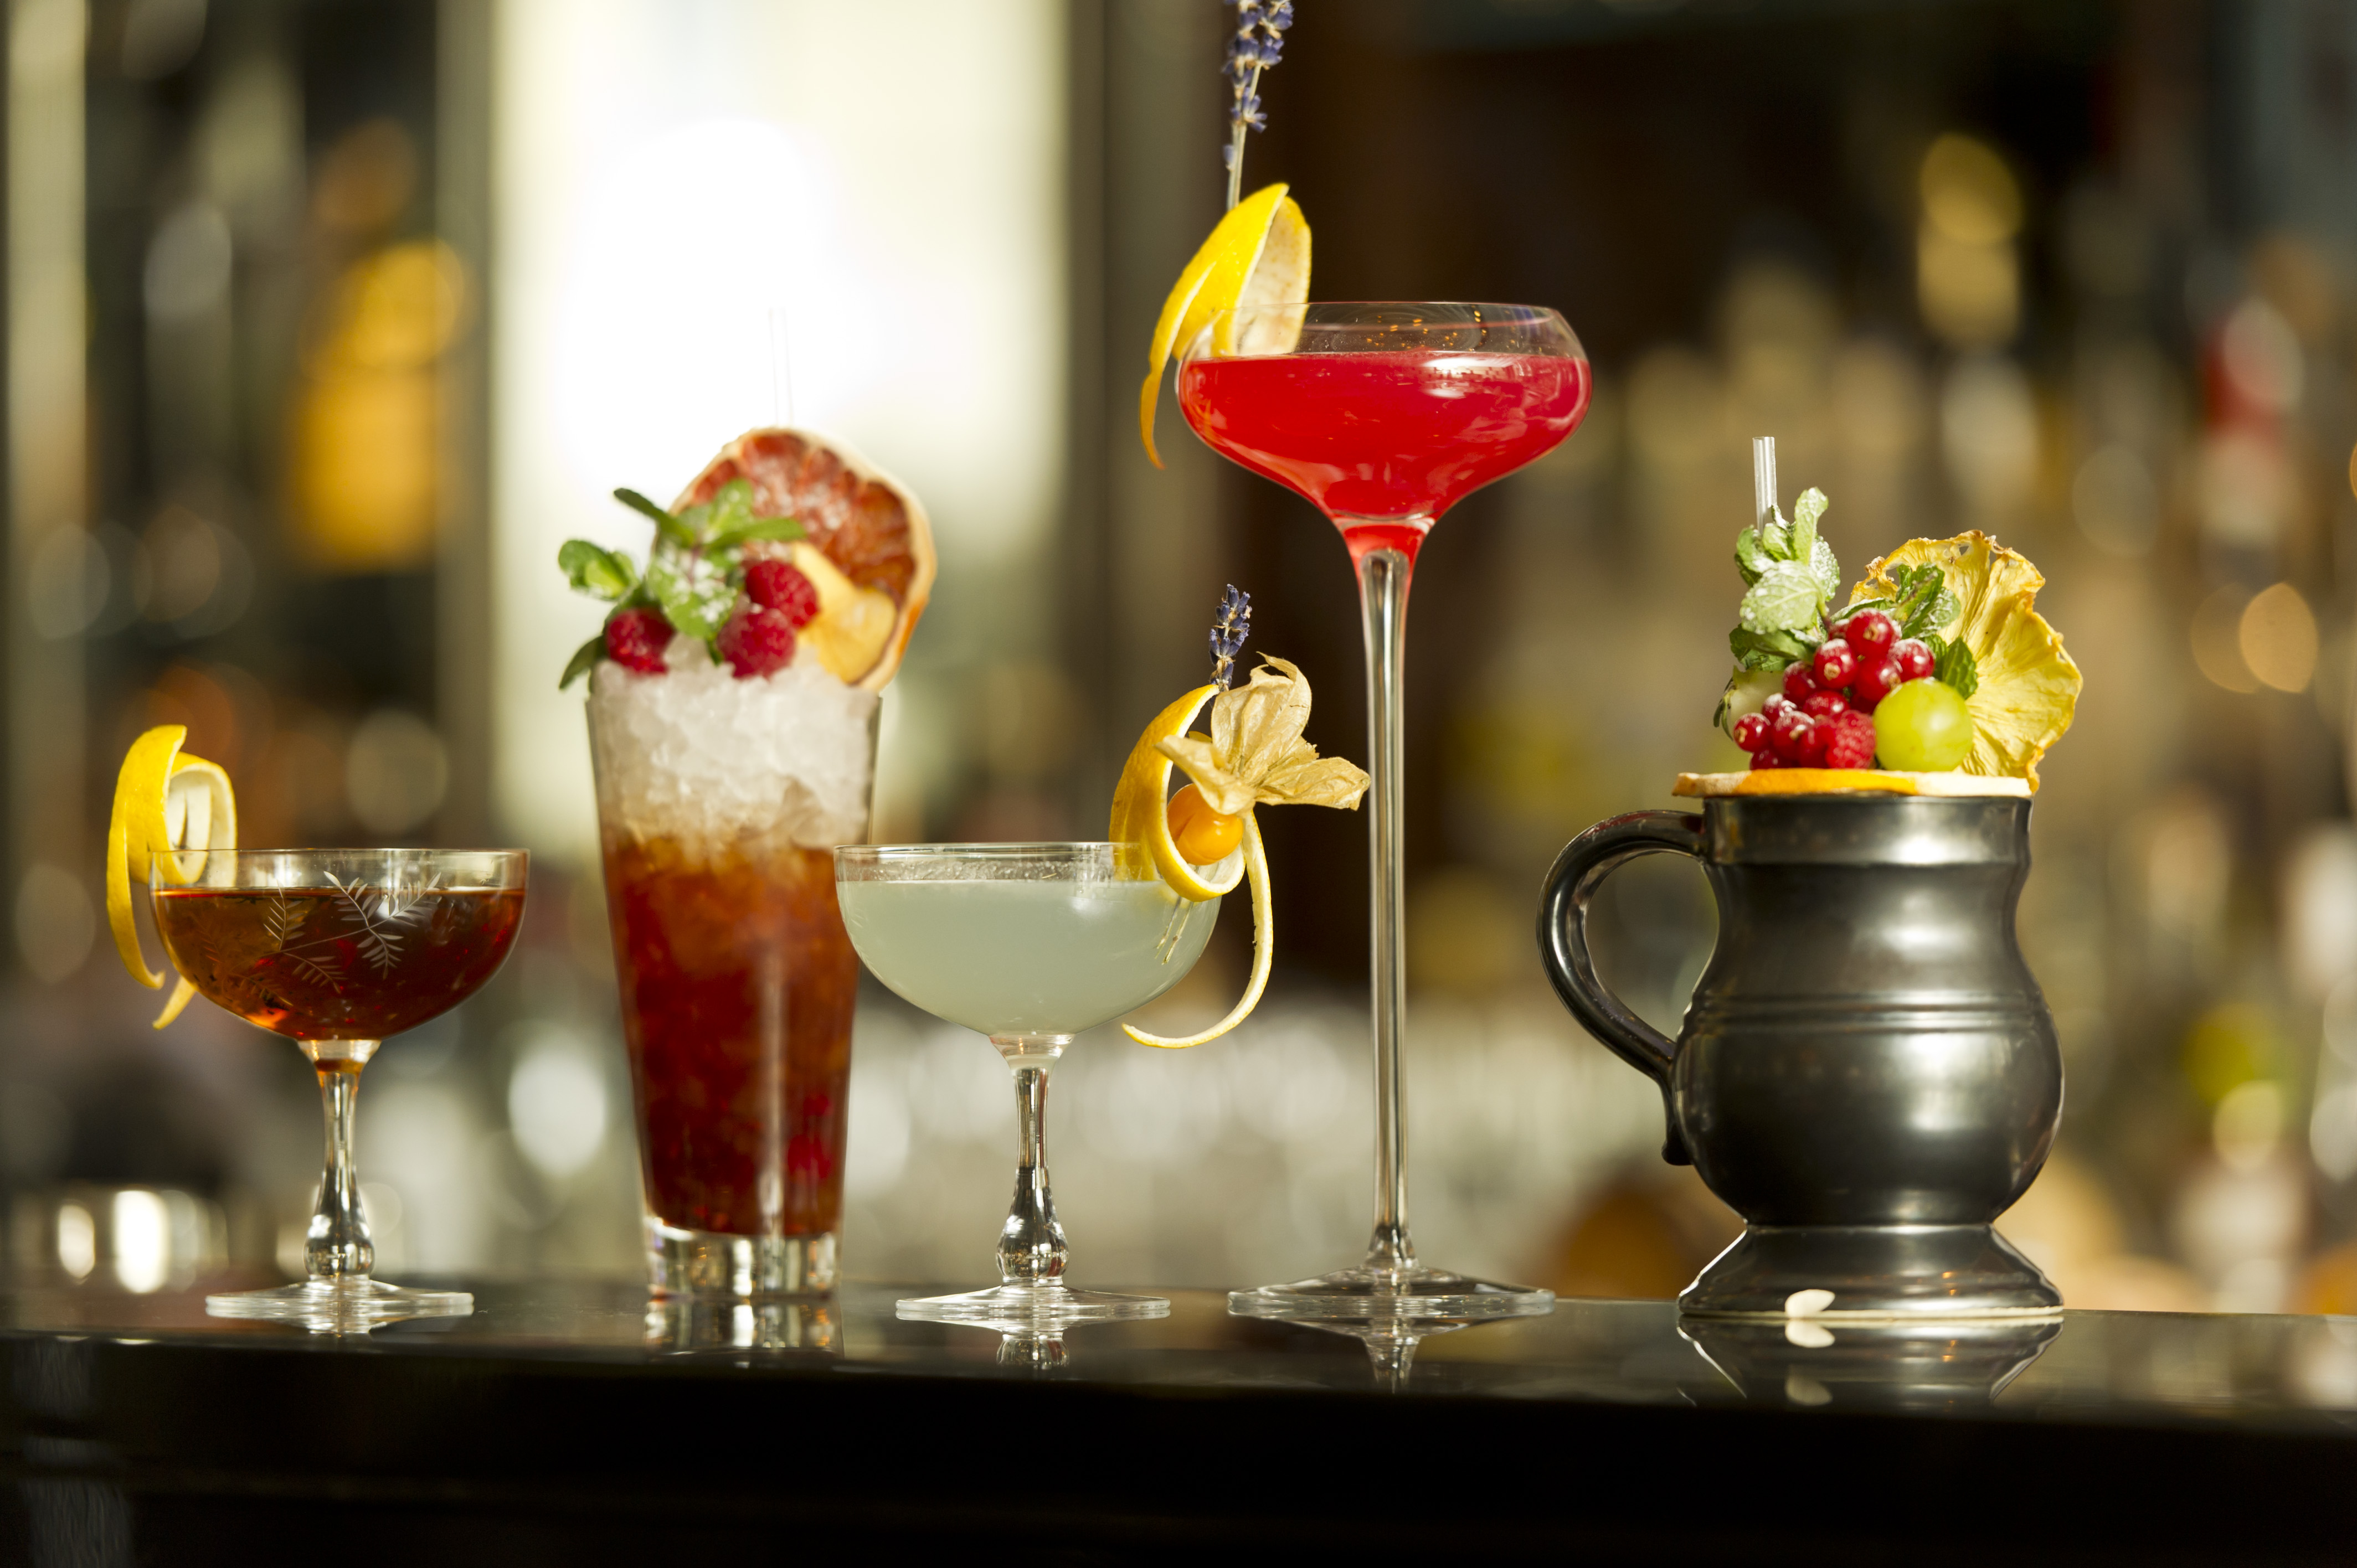 Limited Edition Corinthia Cocktails